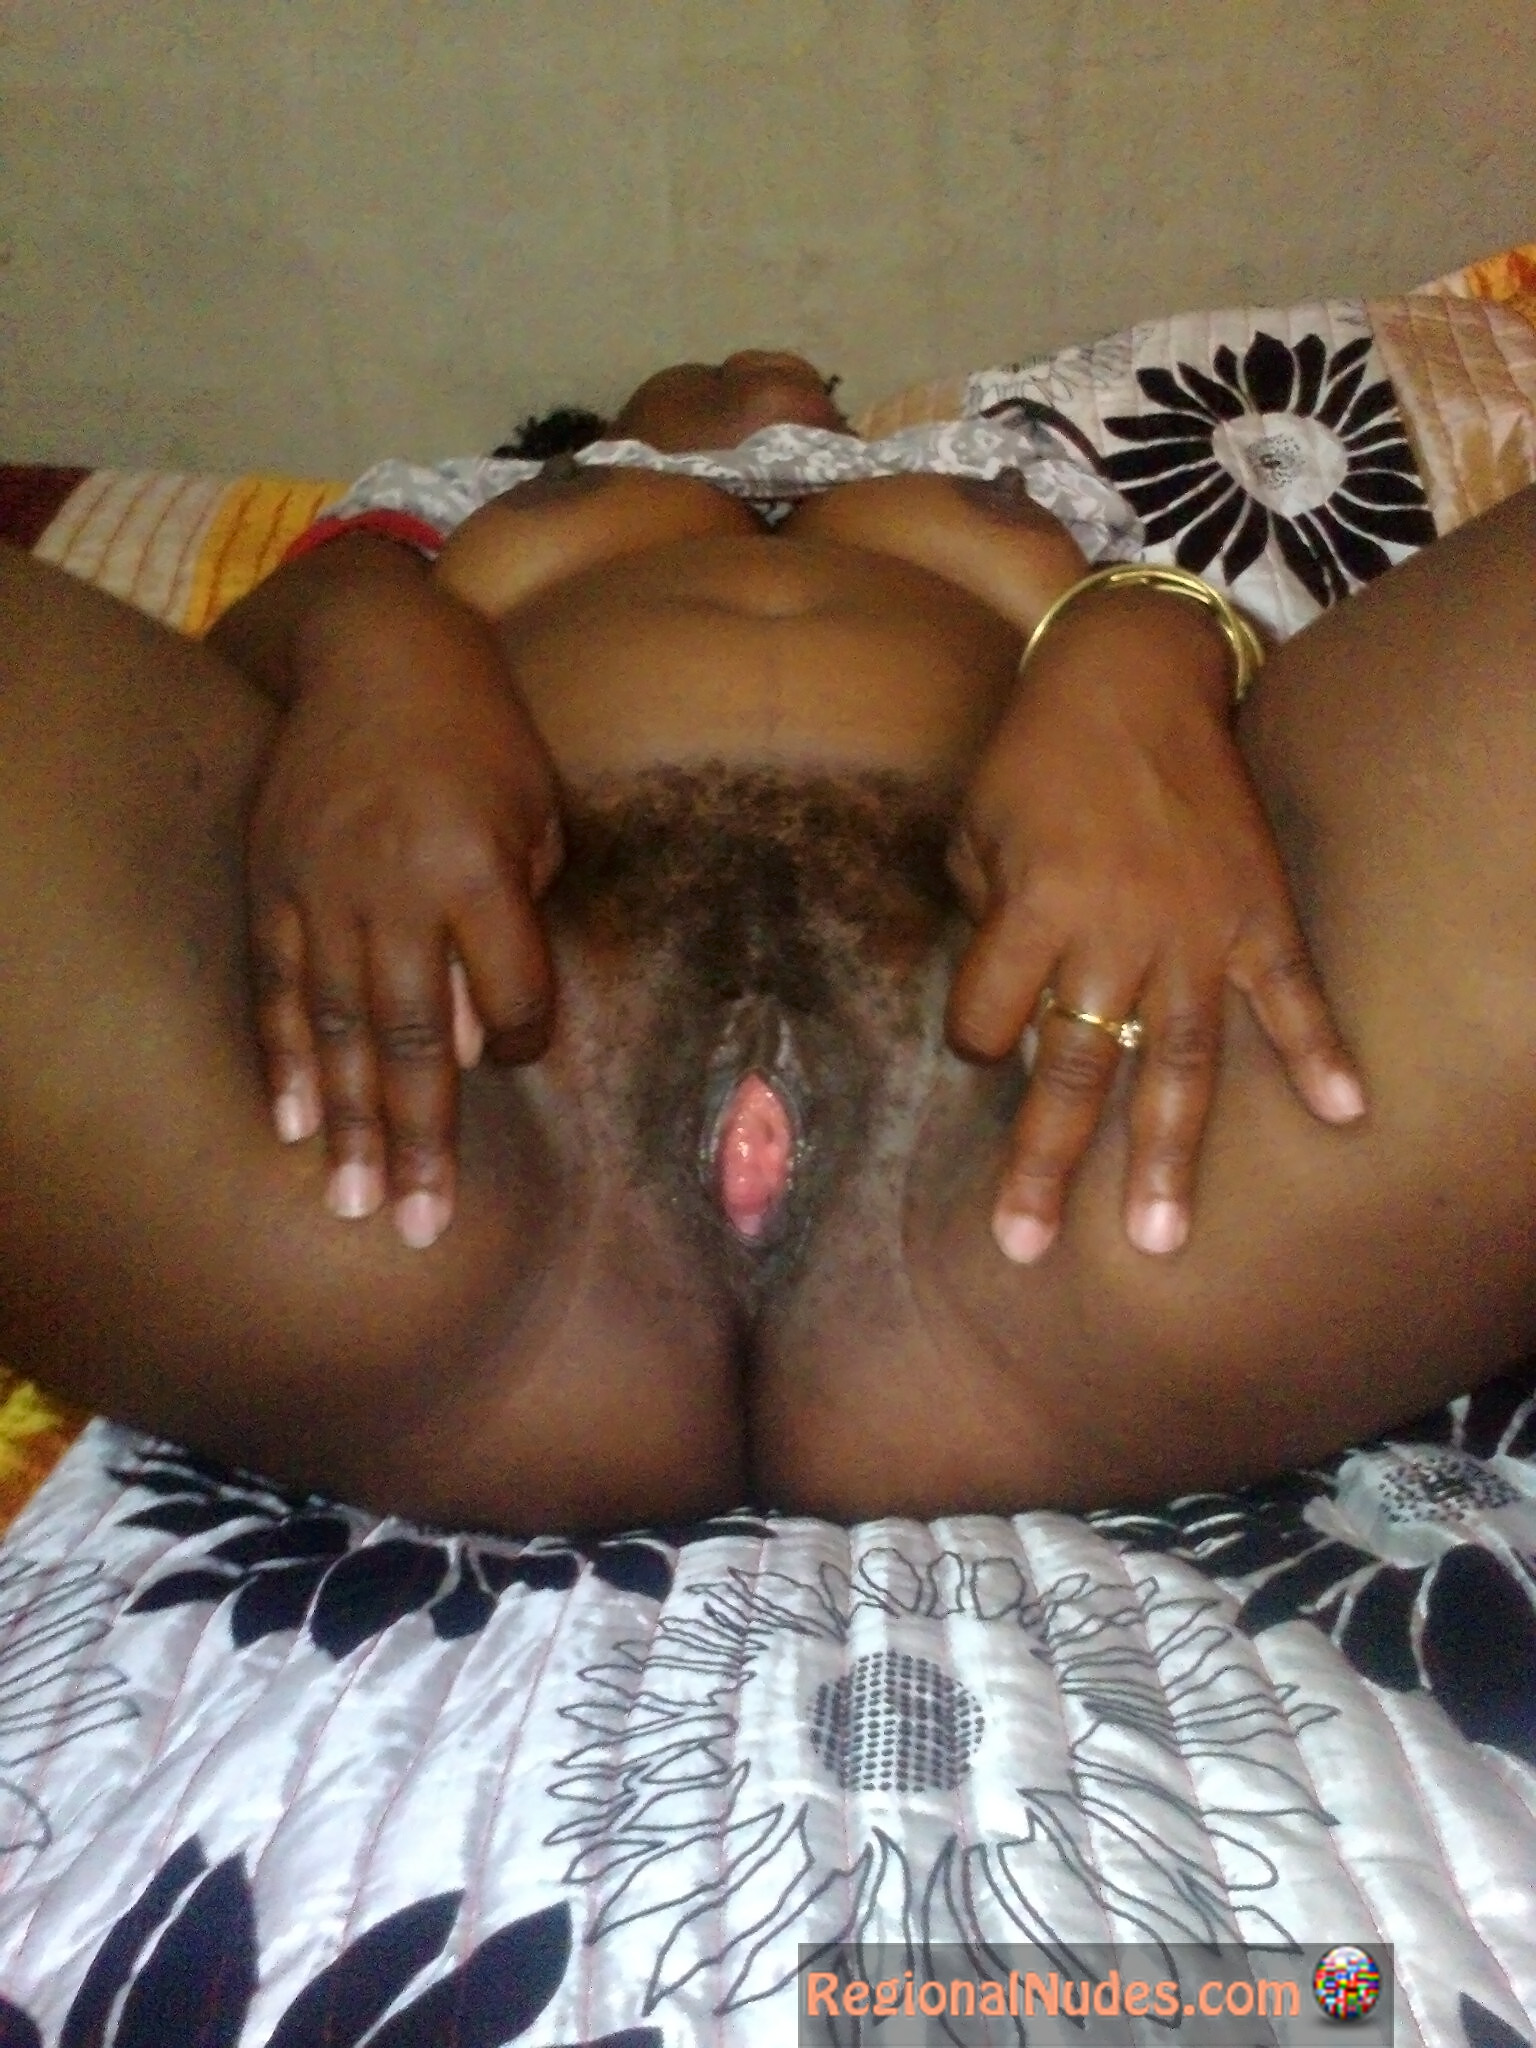 Fat Nigerian Woman Spreading Vagina  Regional Nude Women -9159